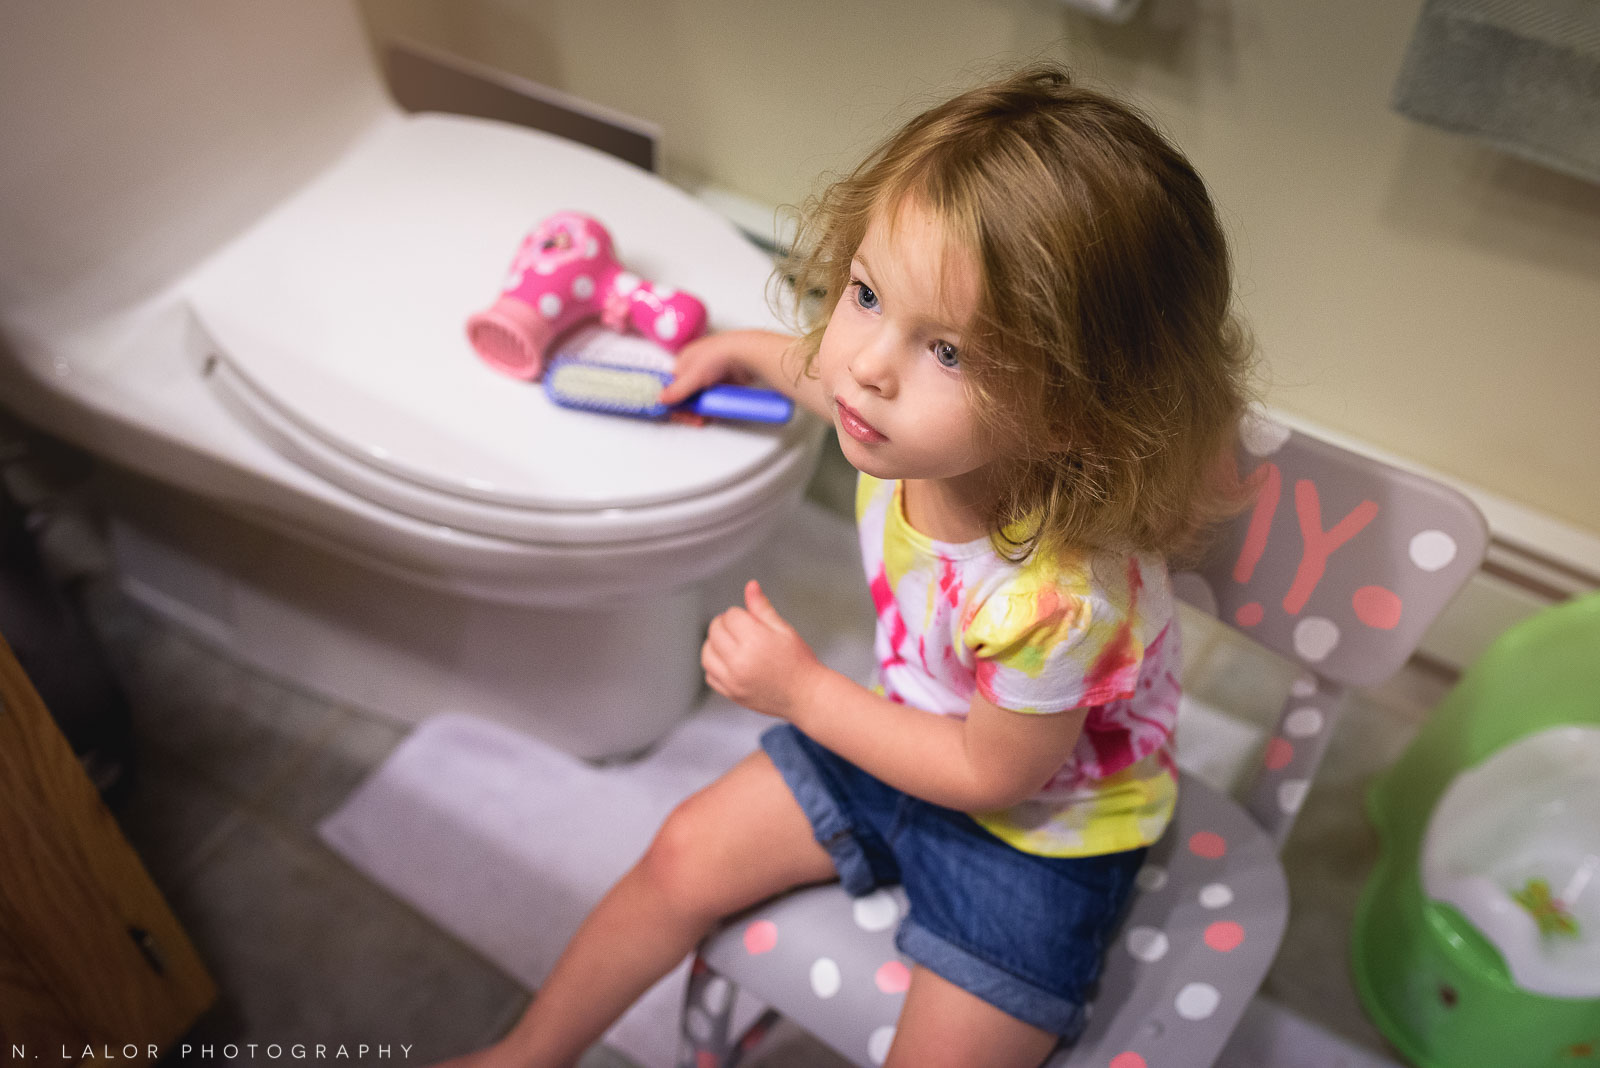 2-year old girl watching Mom get ready in morning. Documentary photo by N. Lalor Photography.